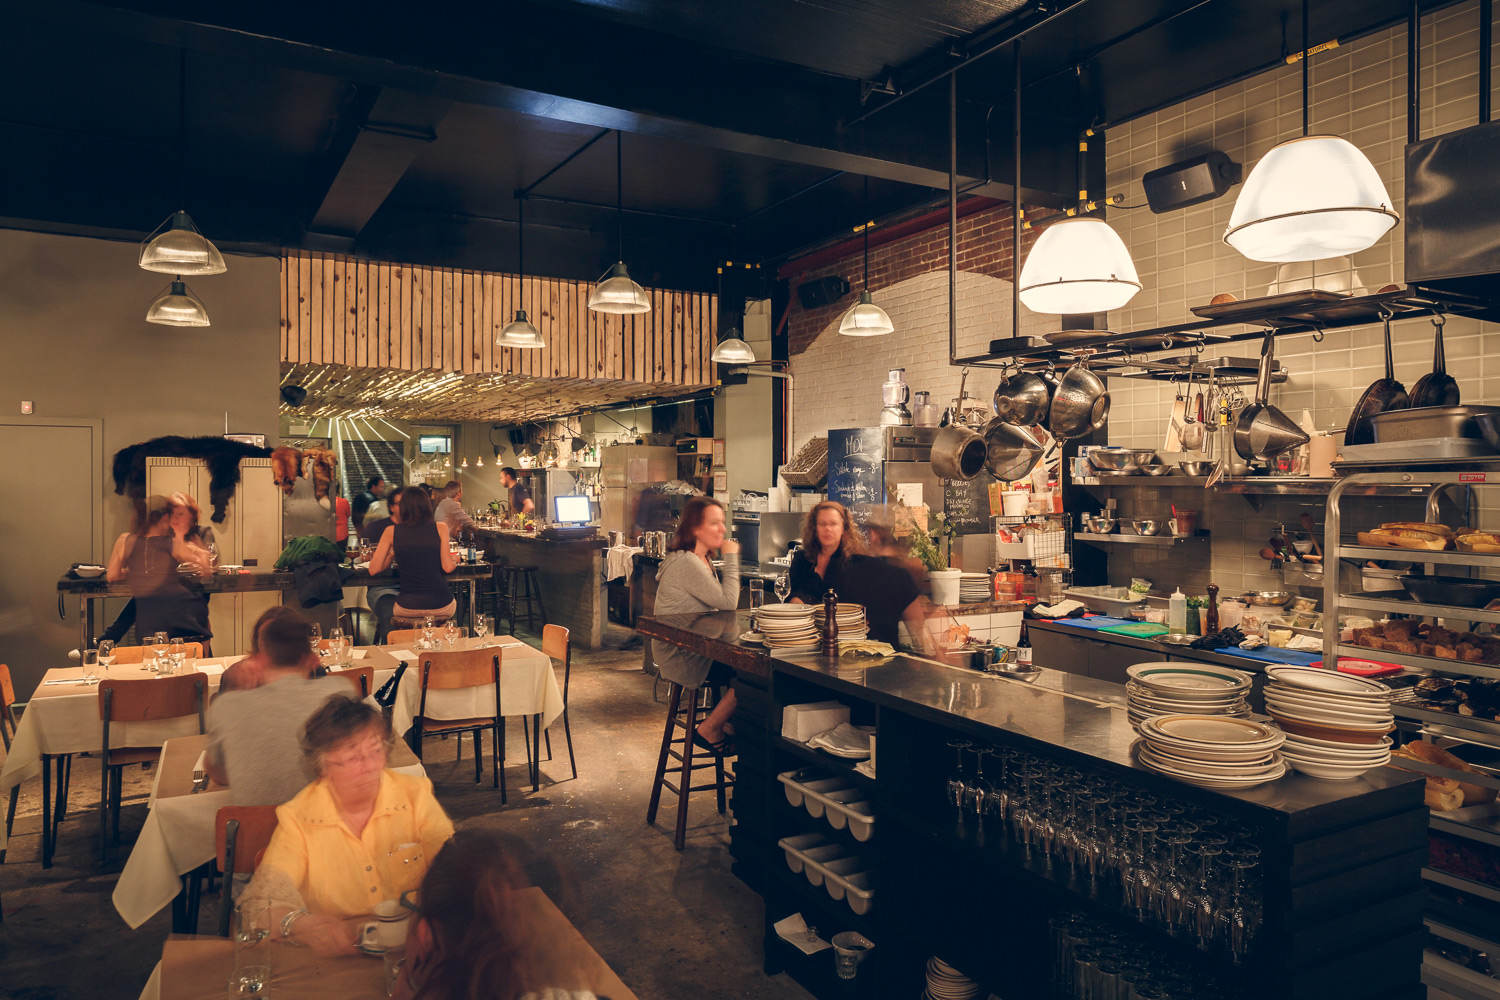 Dining room and view of the kitchen. The ceiling covered with cedar without bark shows a shower light. The original walls and concrete floor give an industrial look to the place